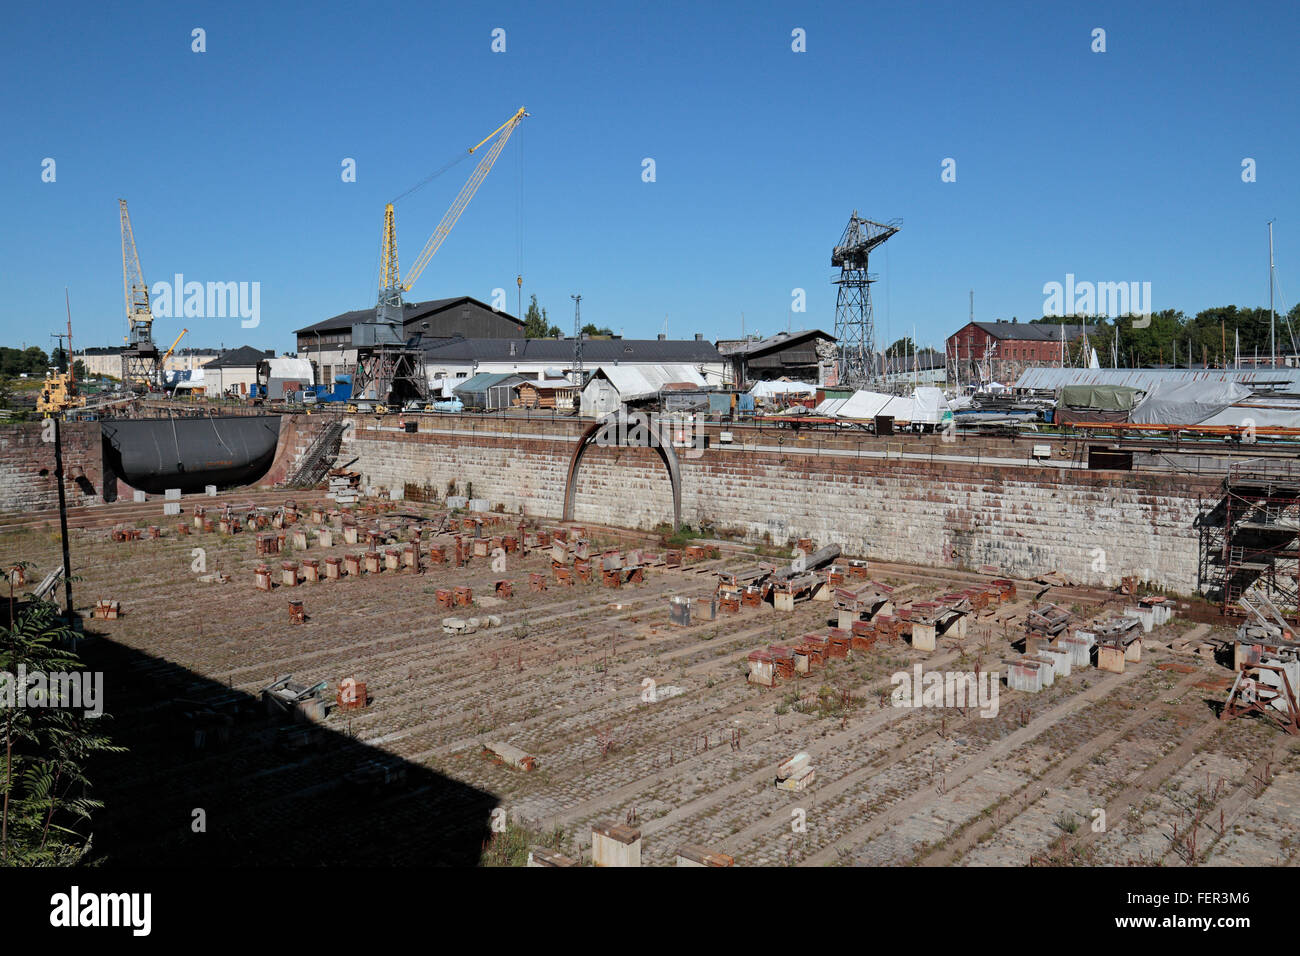 The dry dock on the fortress island of Suomenlinna, Helsinki, Finland. - Stock Image